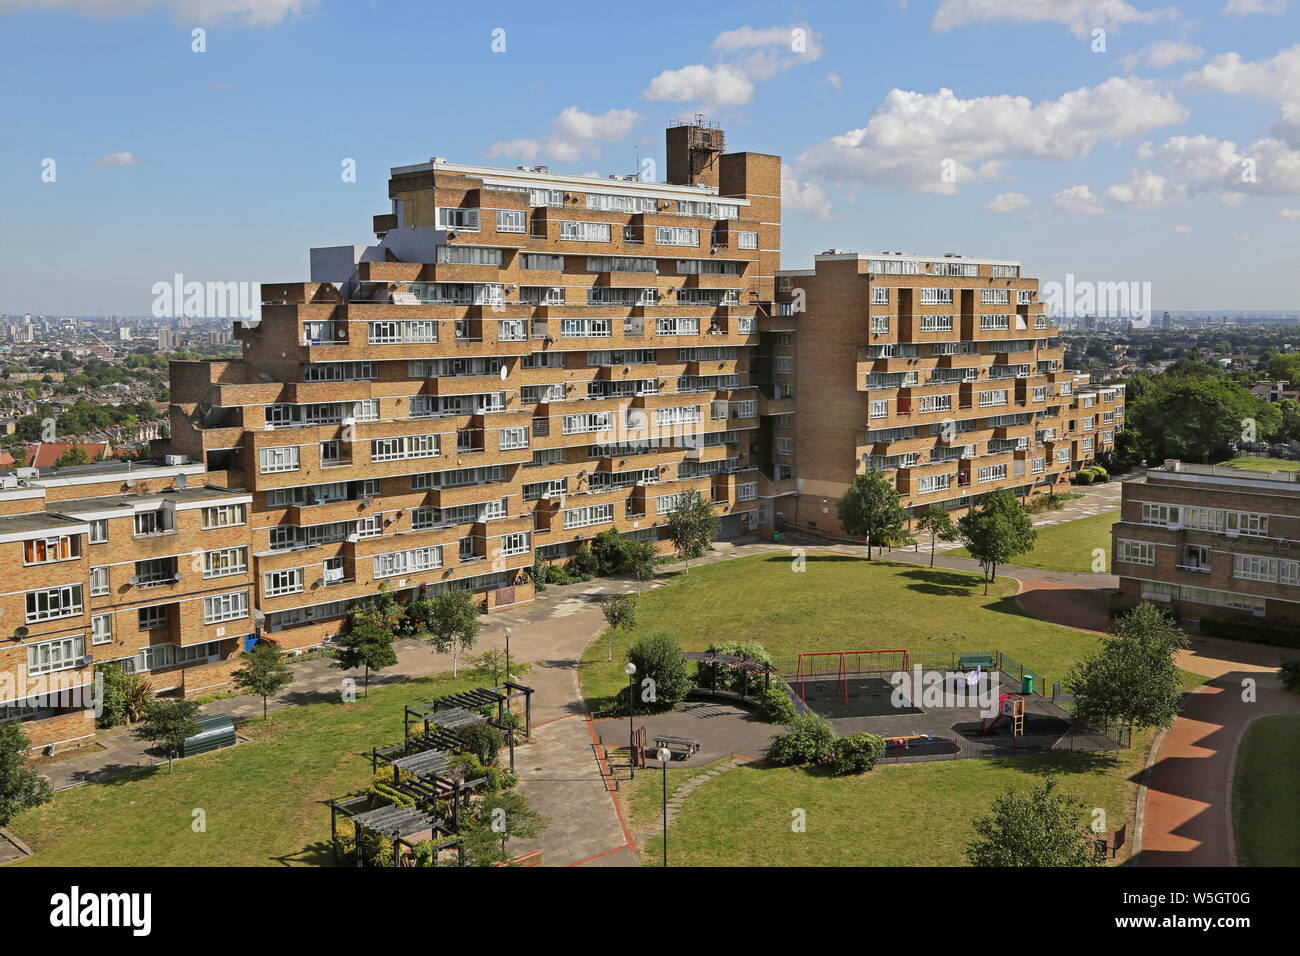 High level view of Dawson's Heights, the famous 1960s public housing project in South London, designed by Kate Macintosh. View north from south block. Stock Photo